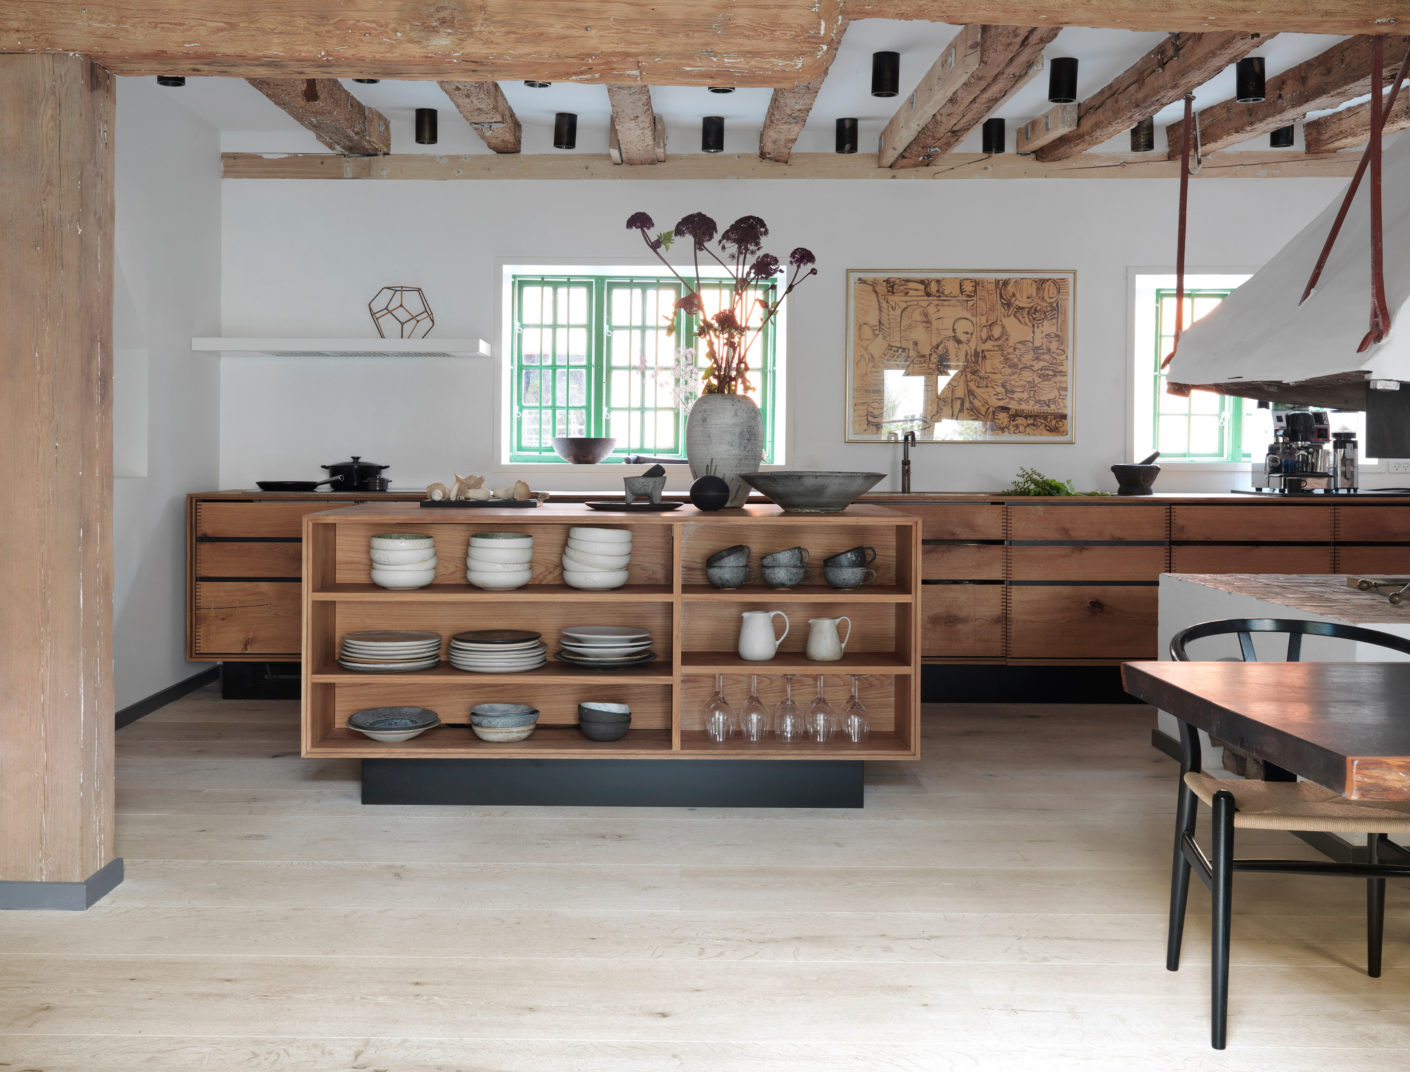 Wood is the main material in the house - to preserve the harmonious overall picture even the kitchen cabinets were custom-made from solid wood.